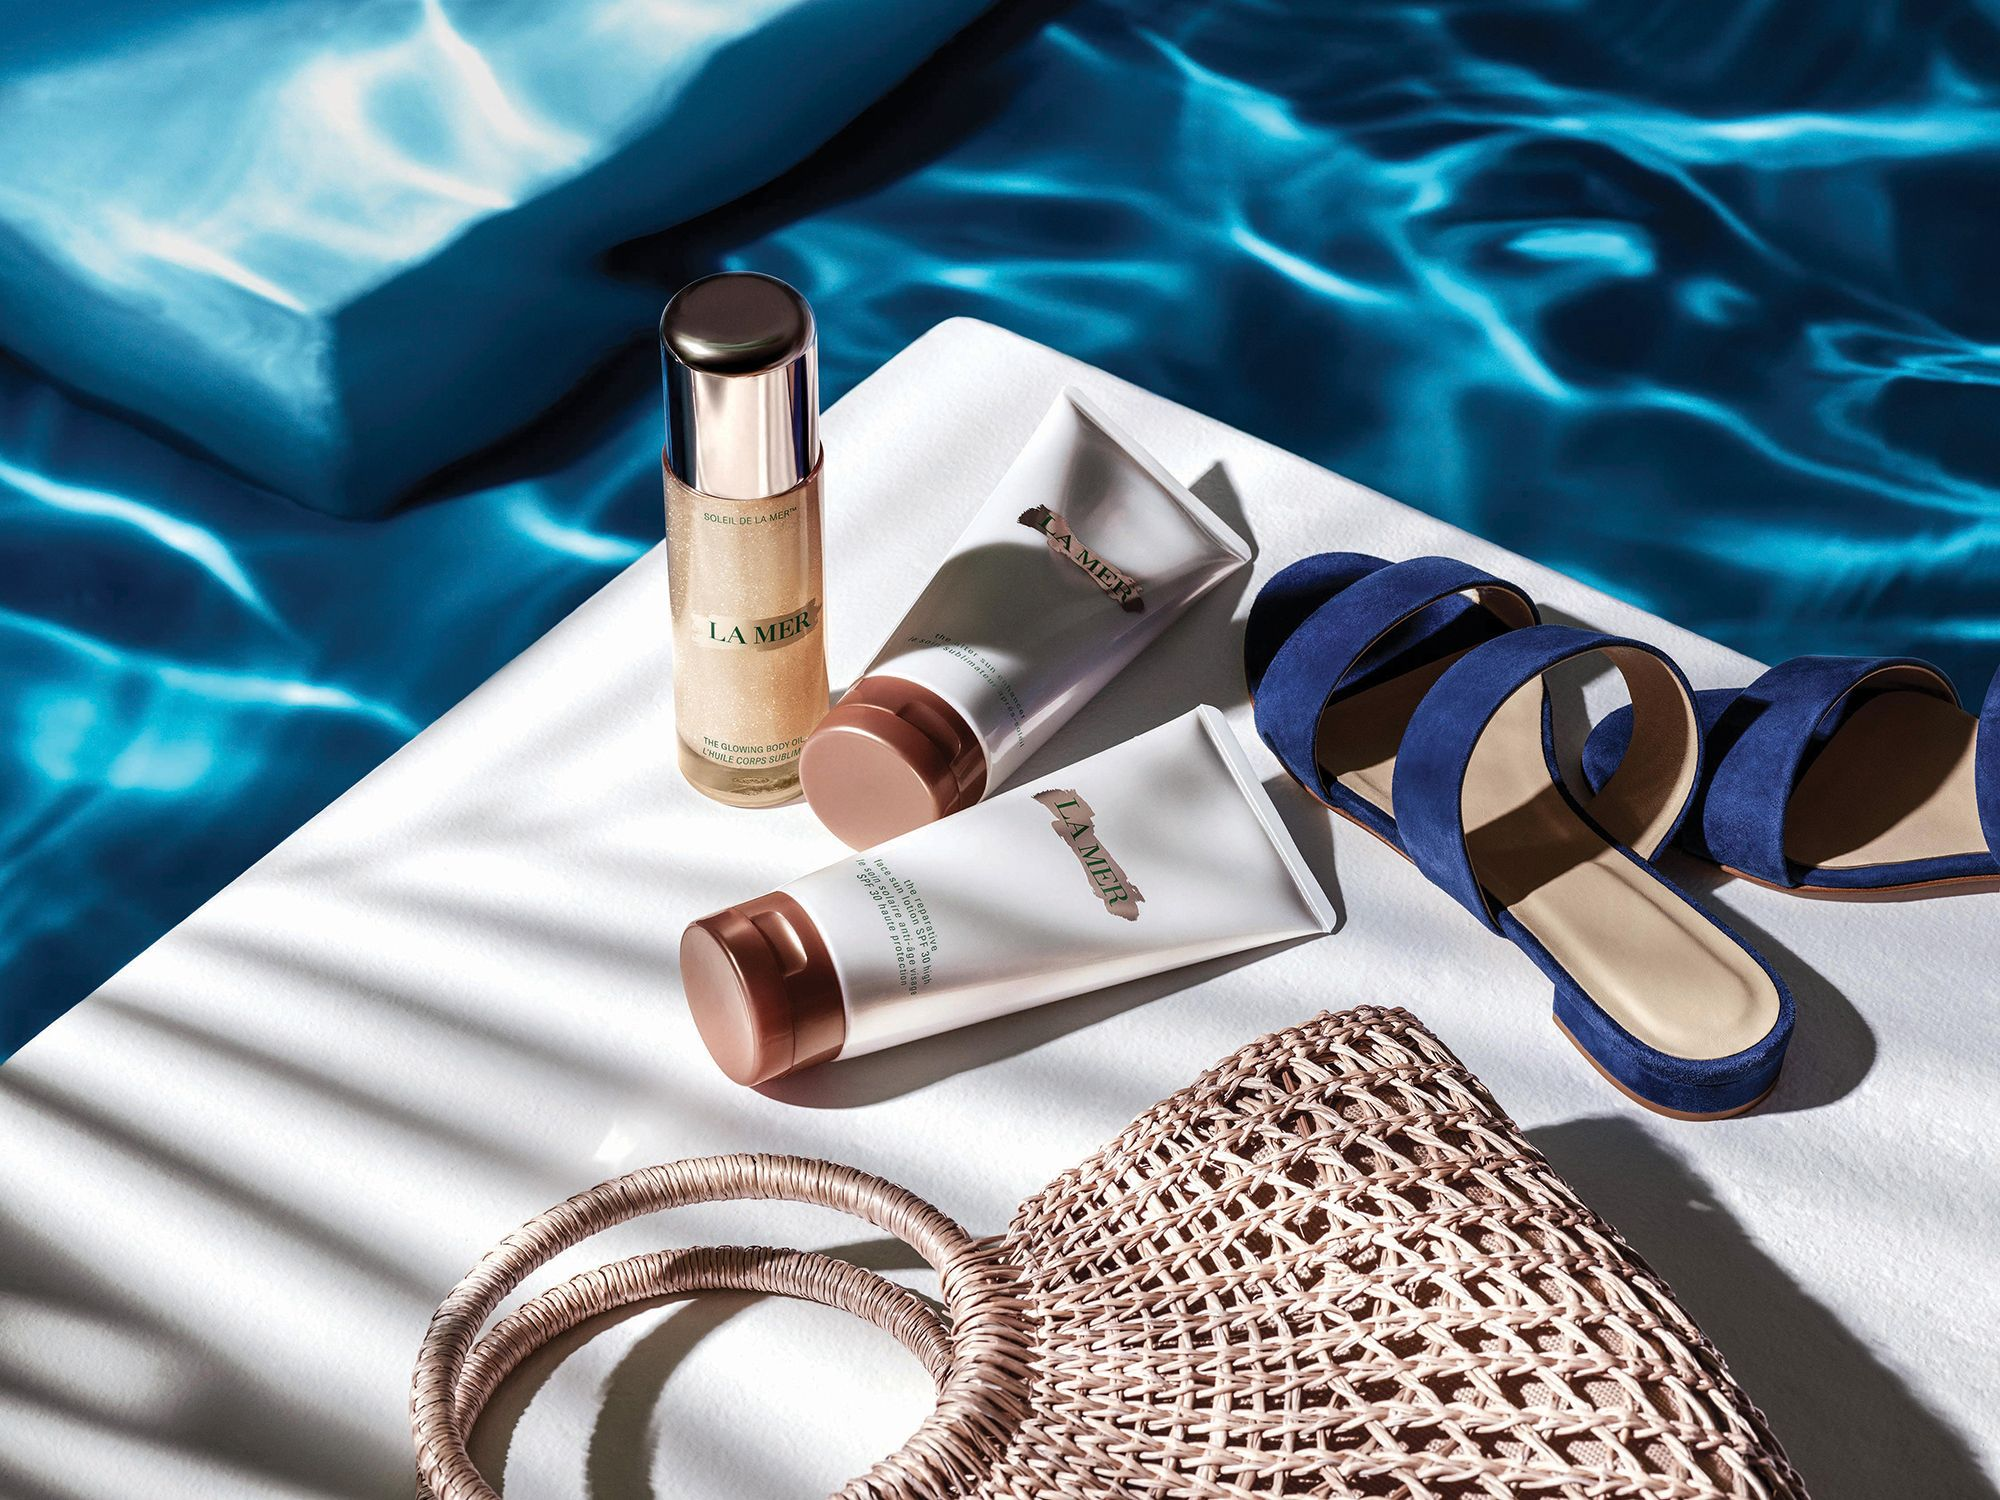 5 Items To Achieve Sun-kissed Looks